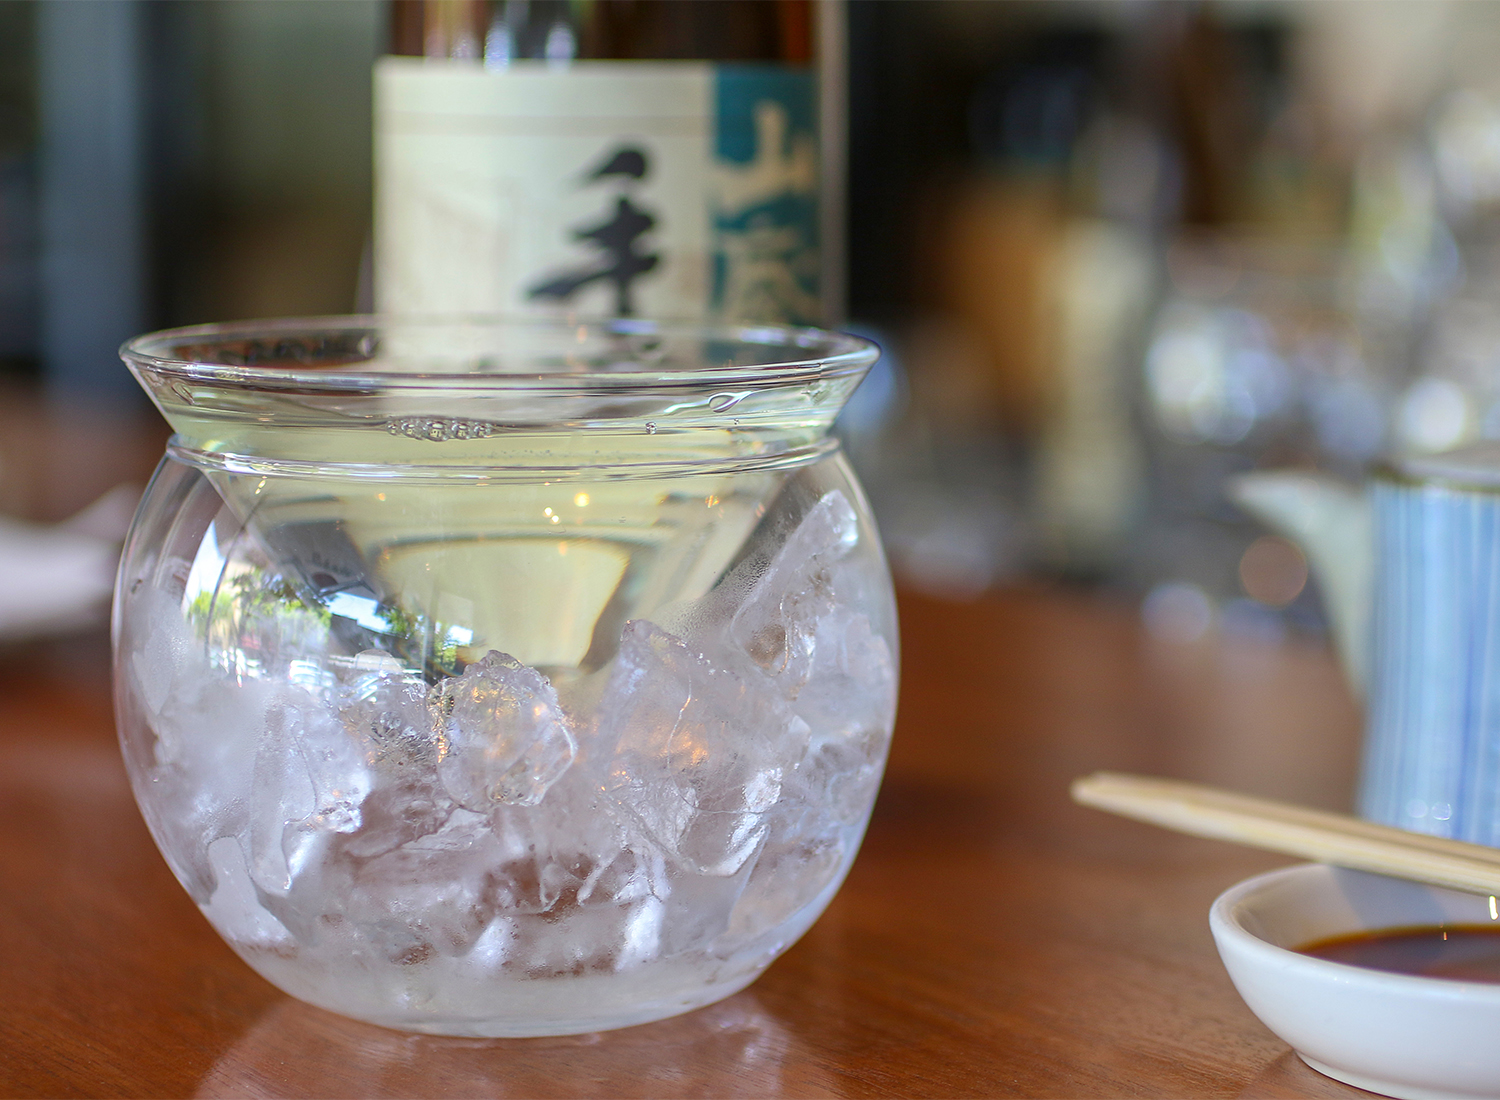 Tedorigawa sake at Sake 107 sushi and sake bar in Petaluma. Heather Irwin/PD